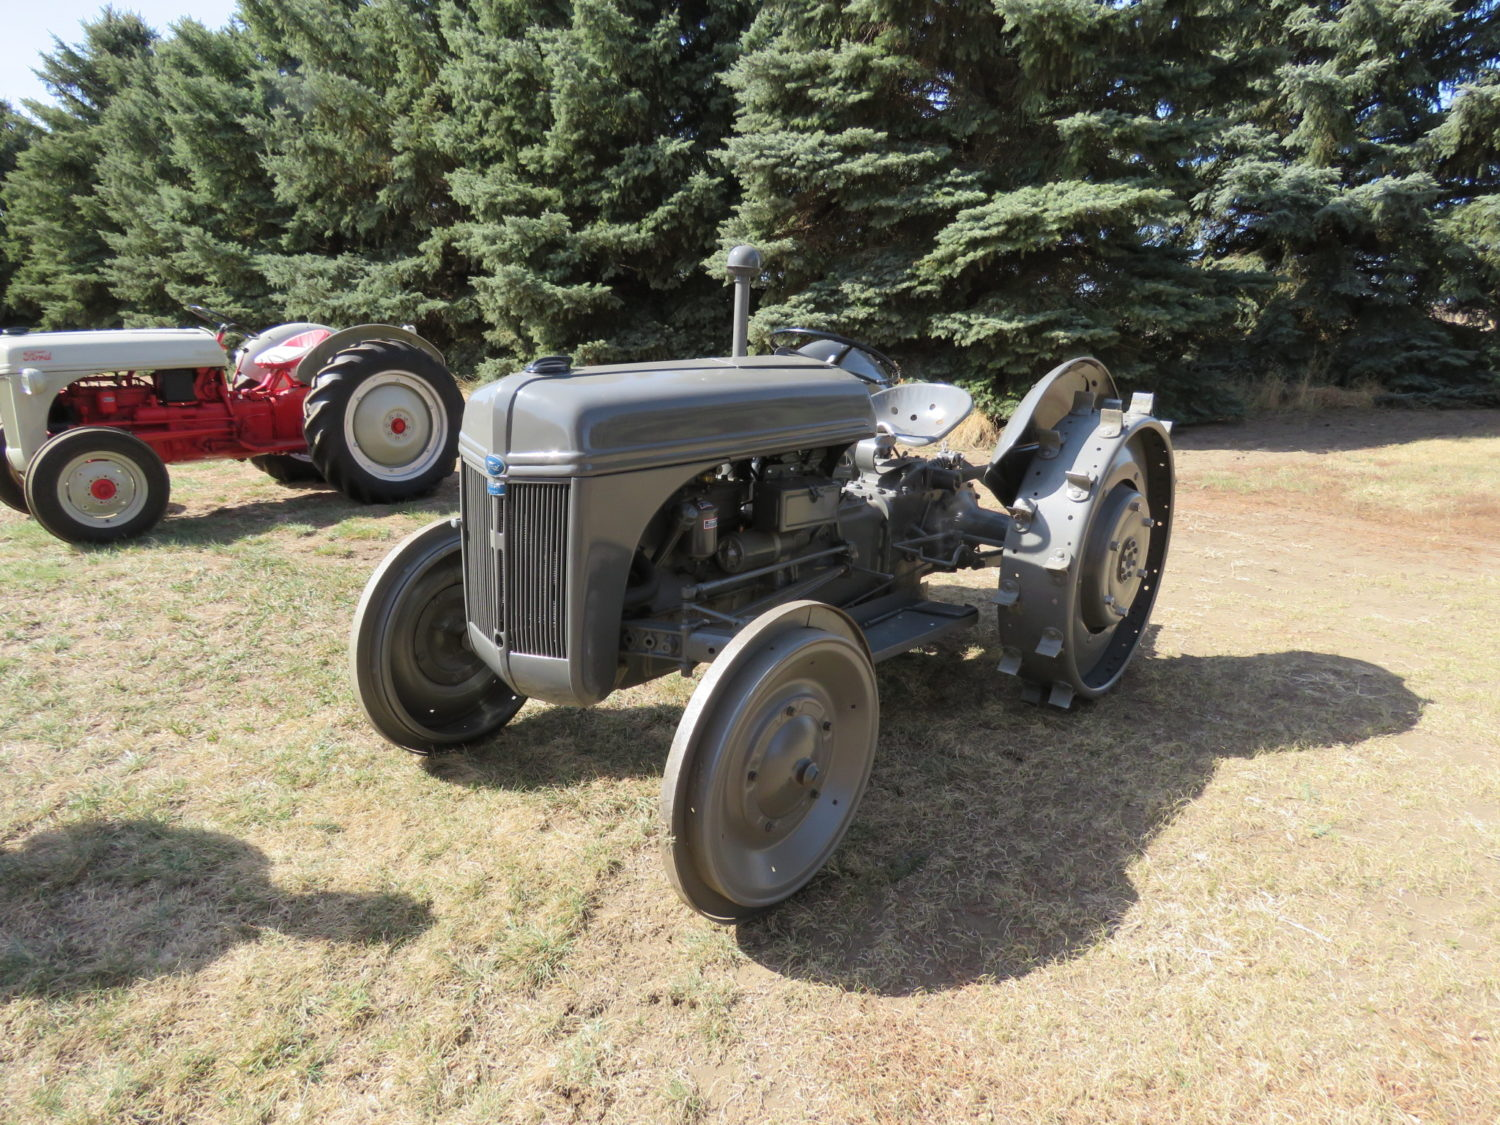 Fabulous Collector Cars, Antique Tractors, Memorabilia & More! The Krinke Collection - image 18